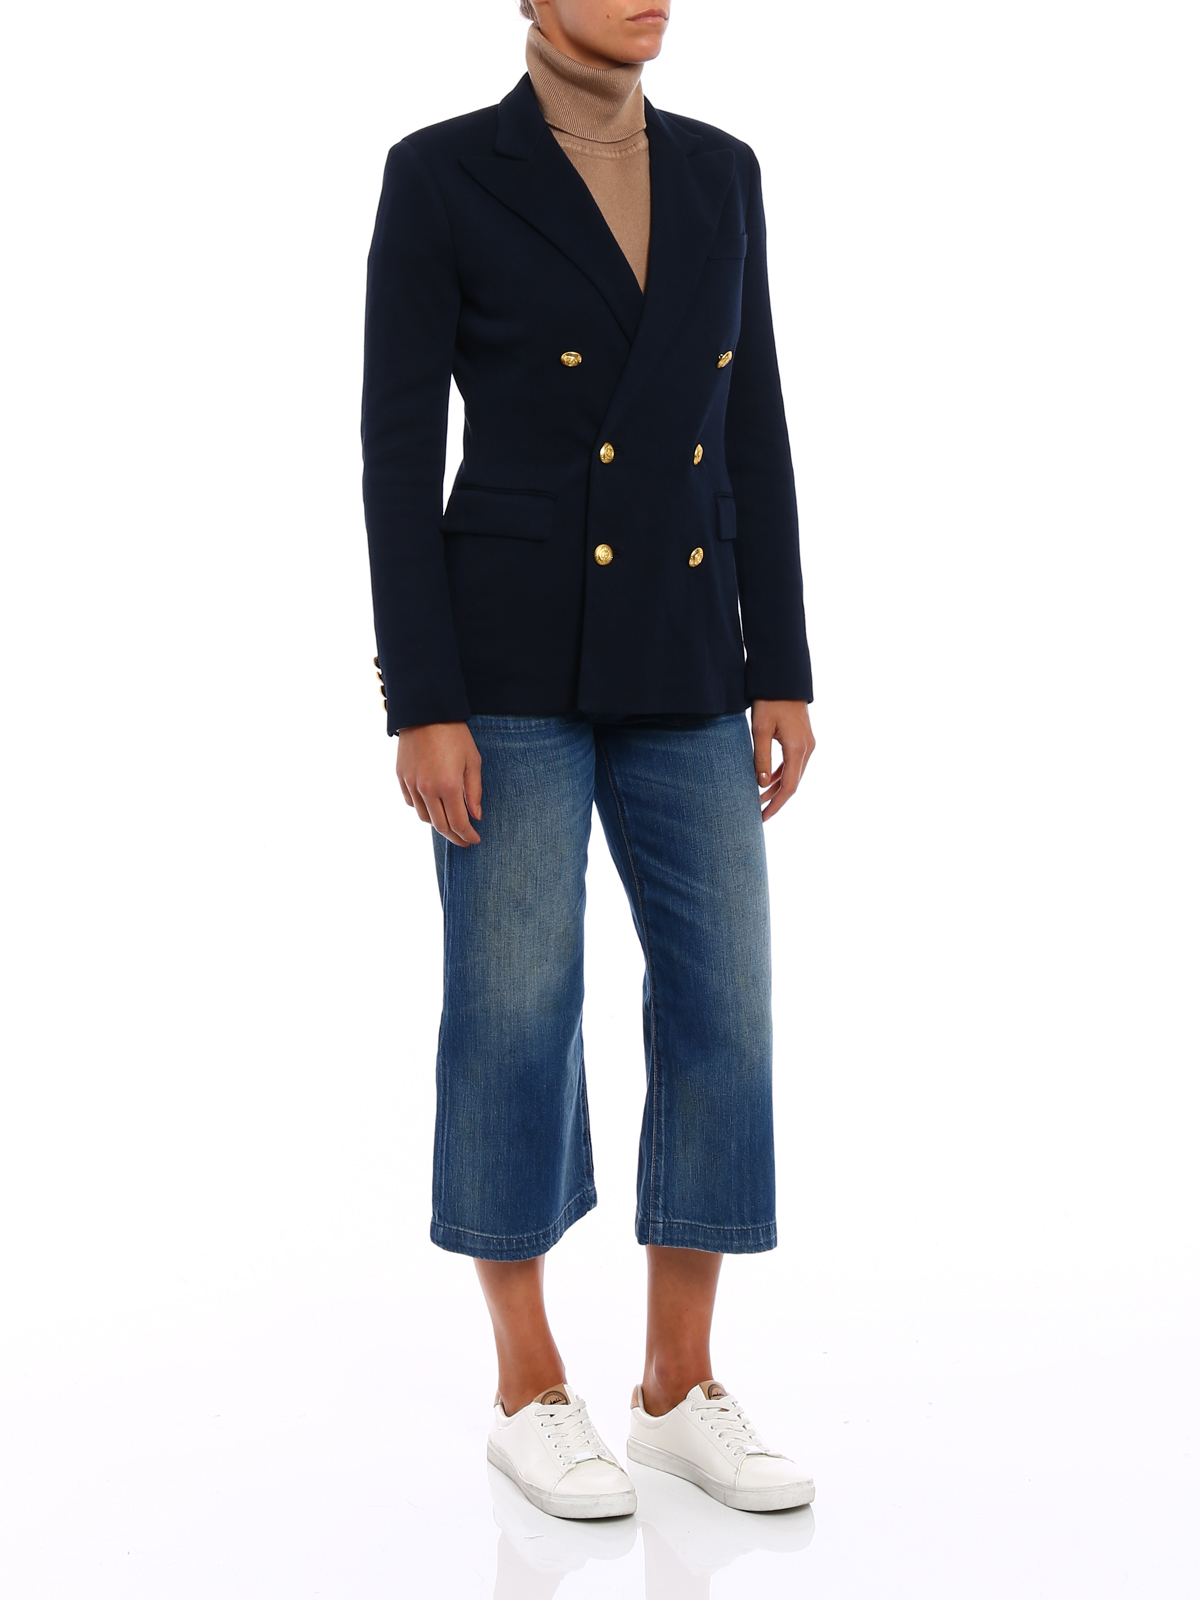 1801a946 Polo Ralph Lauren - Knitted double-breasted blazer - blazers ...